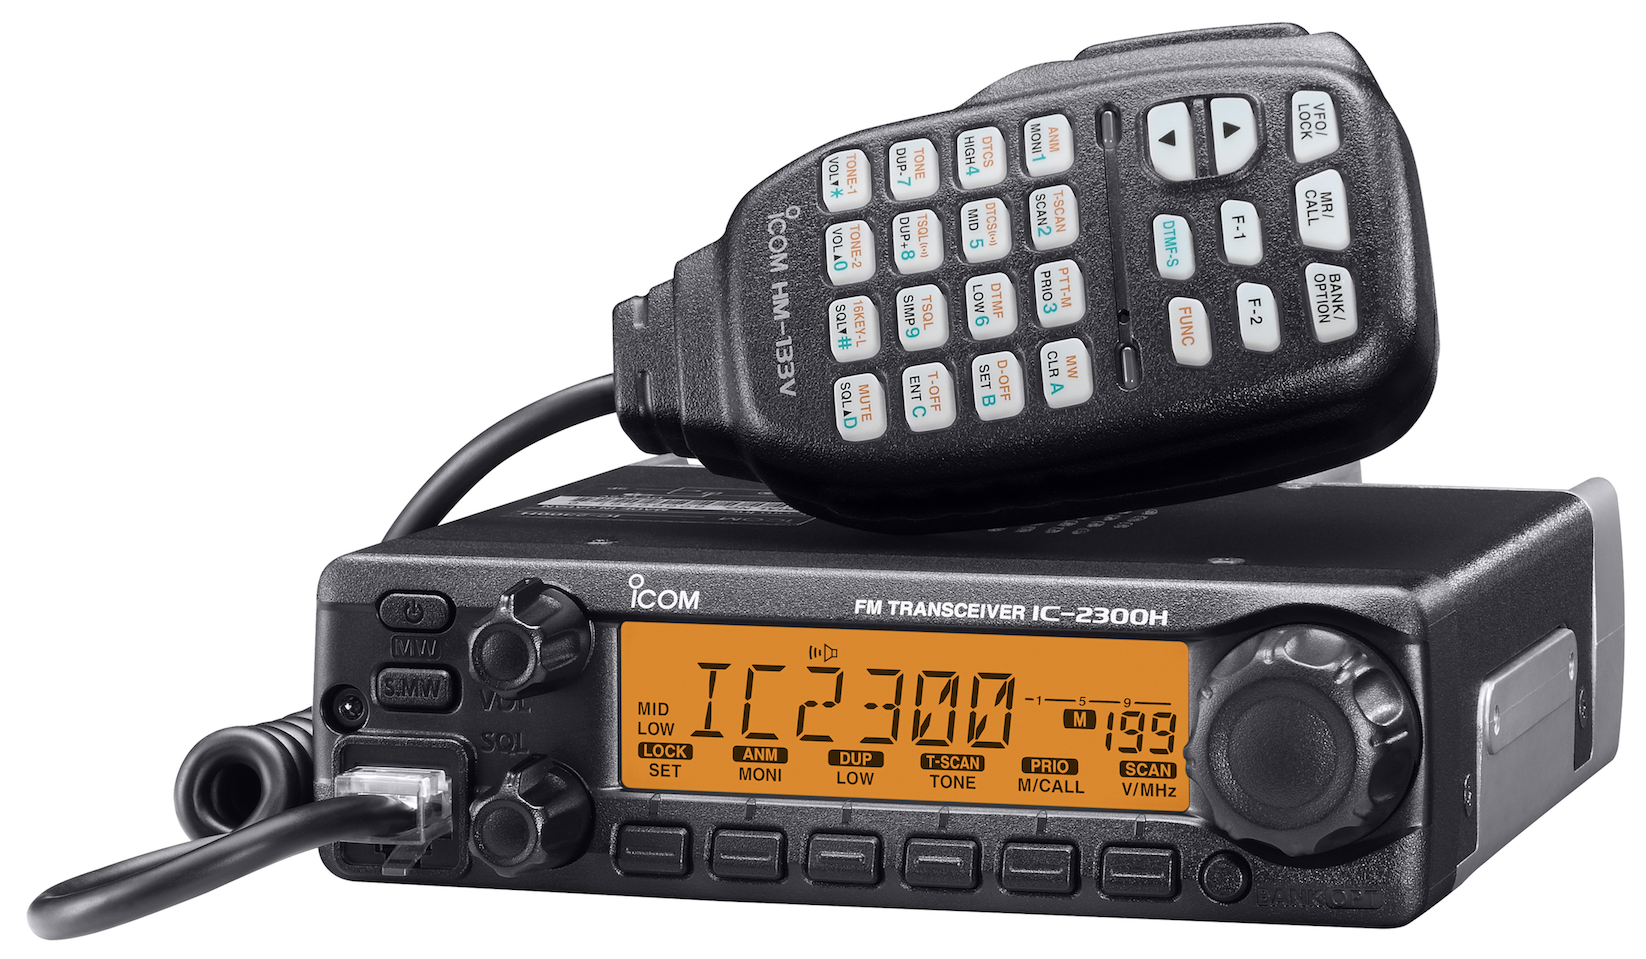 Icom Ic 2300h 2 Meter Mobile This Is A Great Unit It 1903x19 Transistorized Circuit Continuity Tester New Ebay Only Limited To However So If You Want More Bands Shopping Around Bit Might Suit